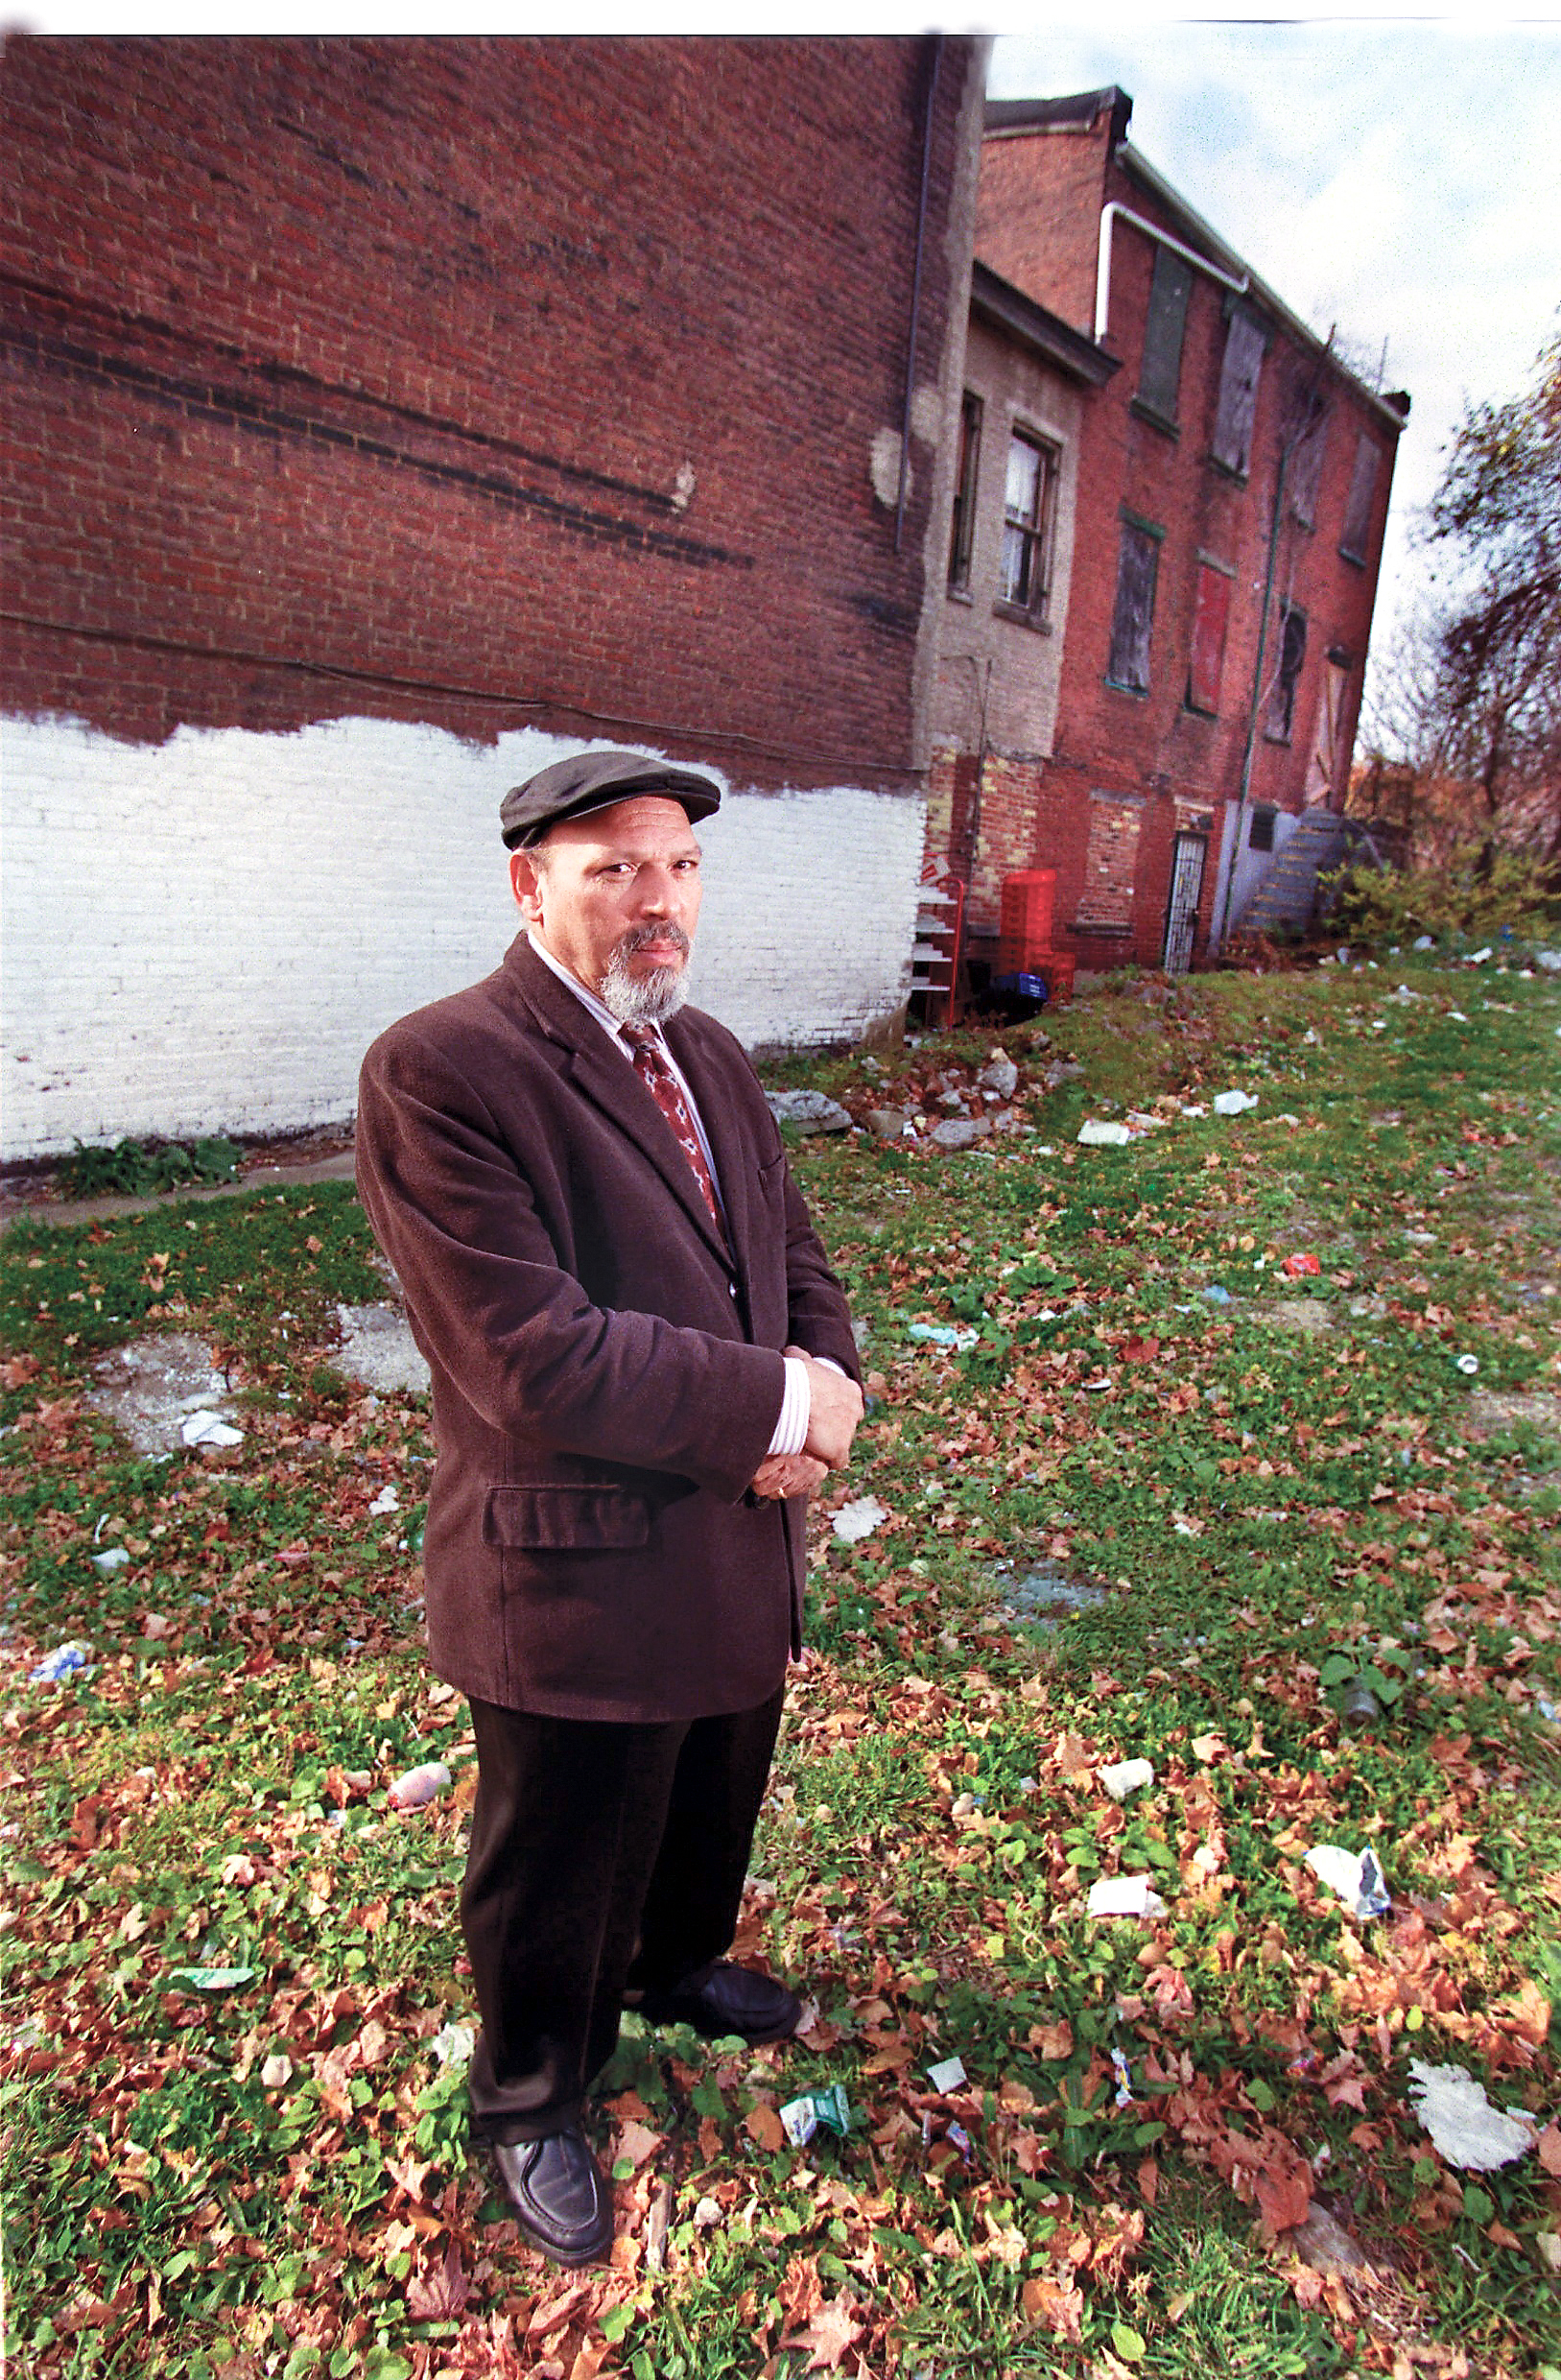 august wilson August wilson (april 27, 1945 – october 2, 2005) was an american playwright whose work included a series of ten plays, the pittsburgh cycle, for which he received two pulitzer prizes for dramaeach work in the series is set in a different decade, and depicts comic and tragic aspects of the african-american experience in the 20th century.